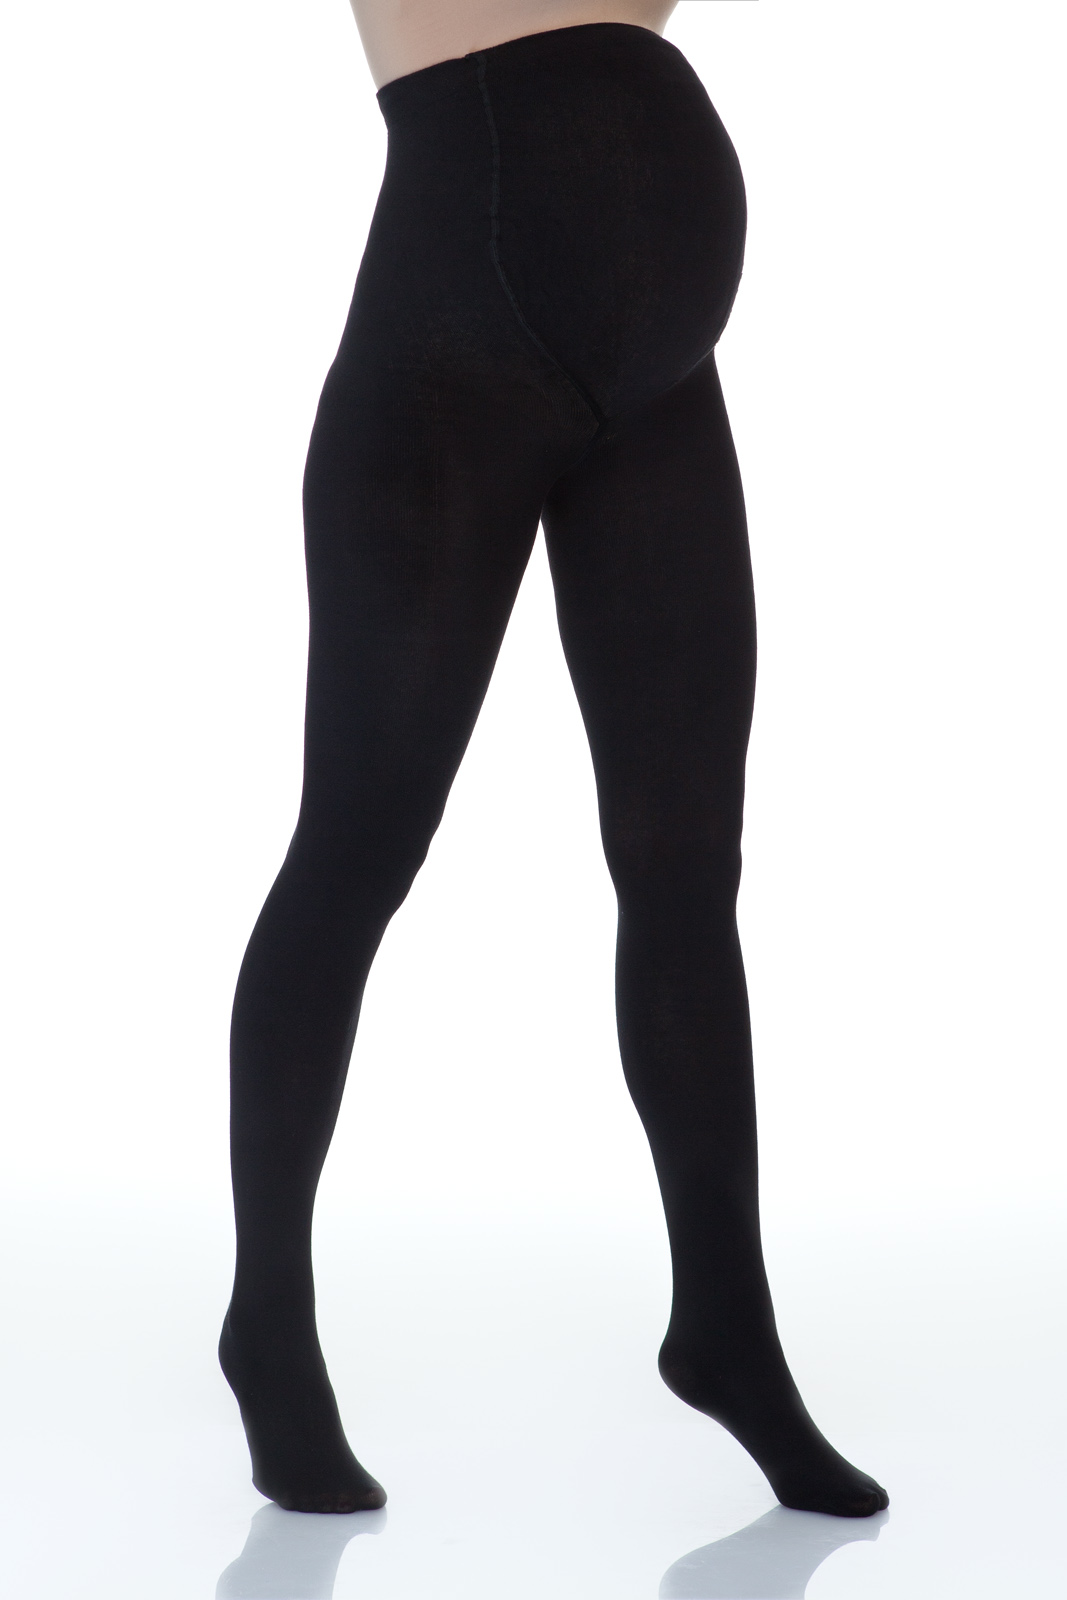 ART. 419 Maternity Tights 3D 100 denier (microfiber ...